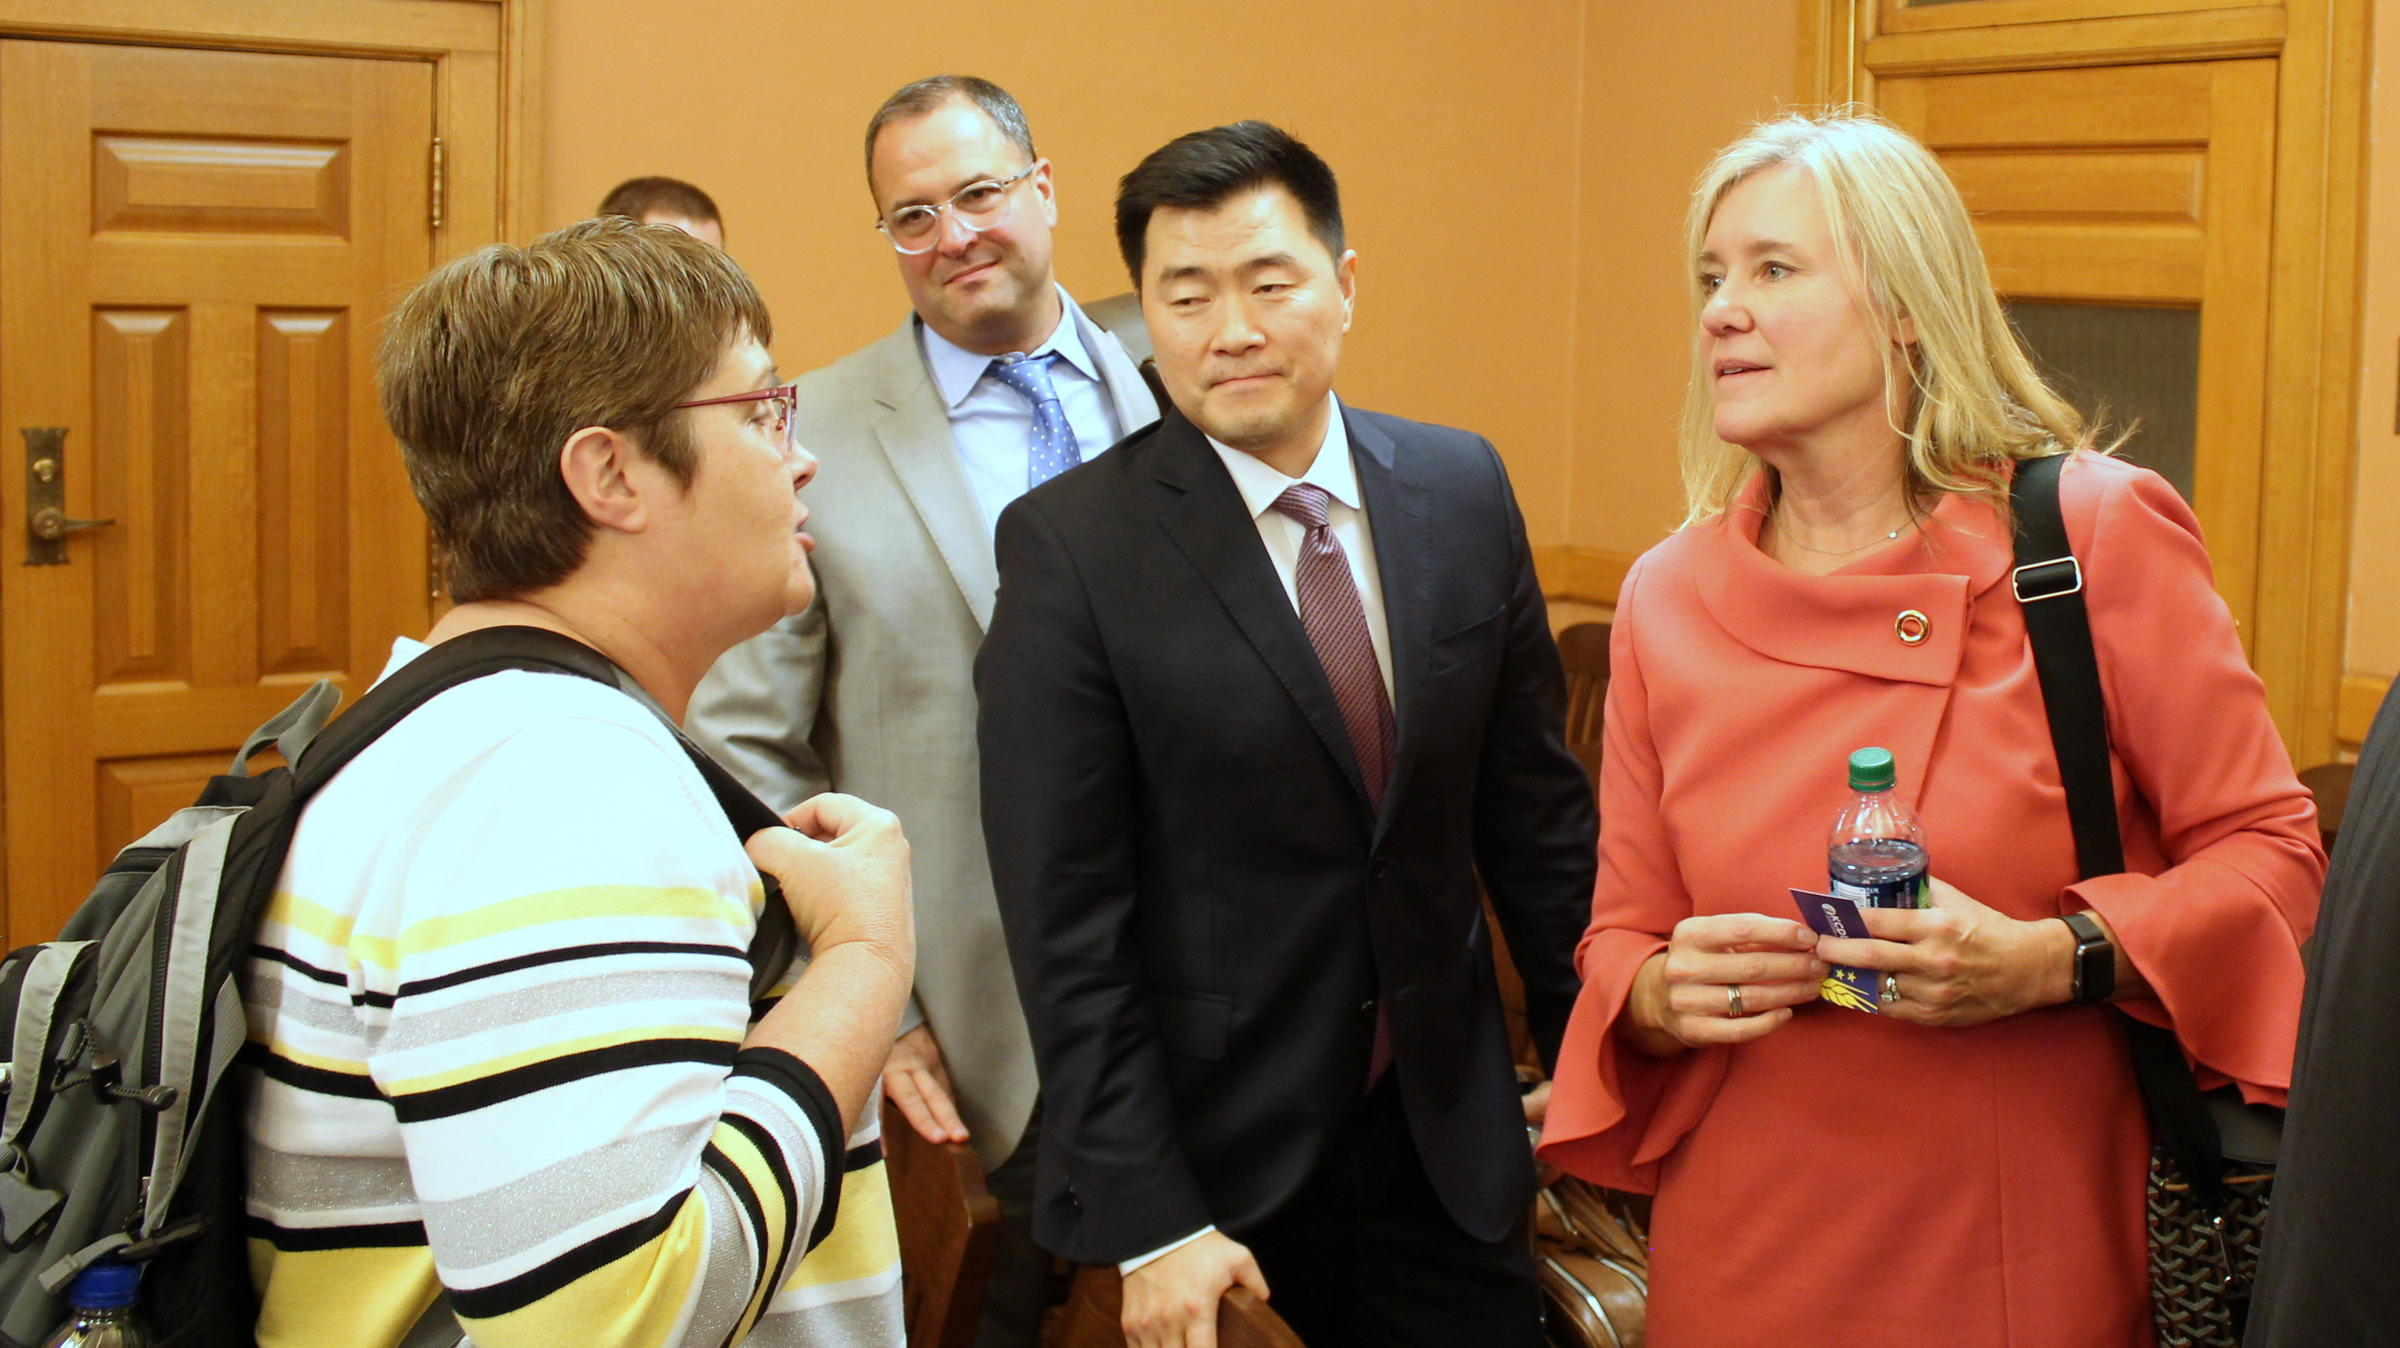 Aetna Medicaid CEO Randy Hyun (center) and Regional Vice President Deb Bacon (right) met with Kansas lawmakers in Topeka on Tuesday. (Photo by Stephen Koranda)